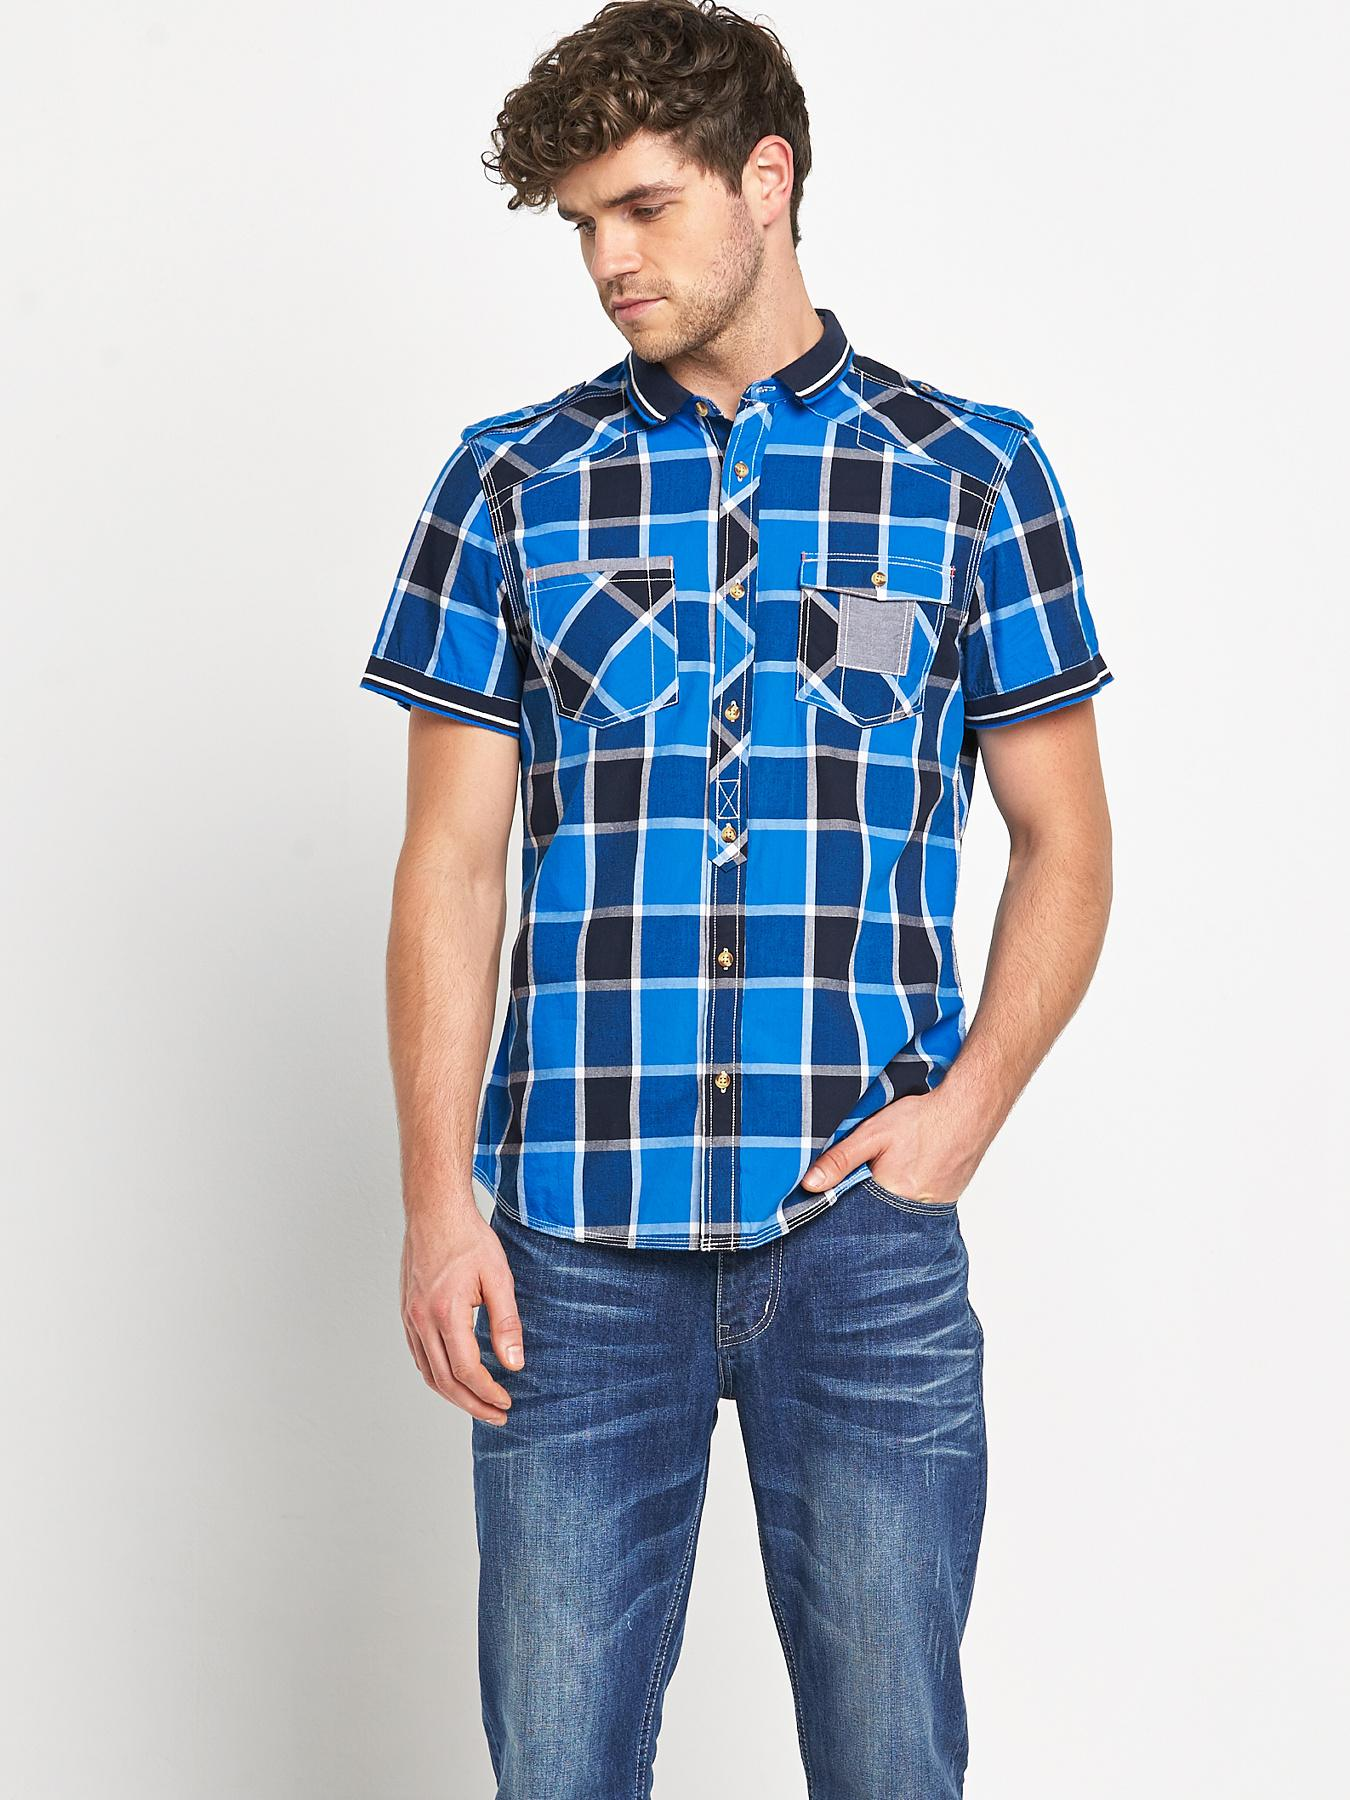 Goodsouls Mens Short Sleeve Blue Check Ribbed Collar Shirt - Blue, Blue